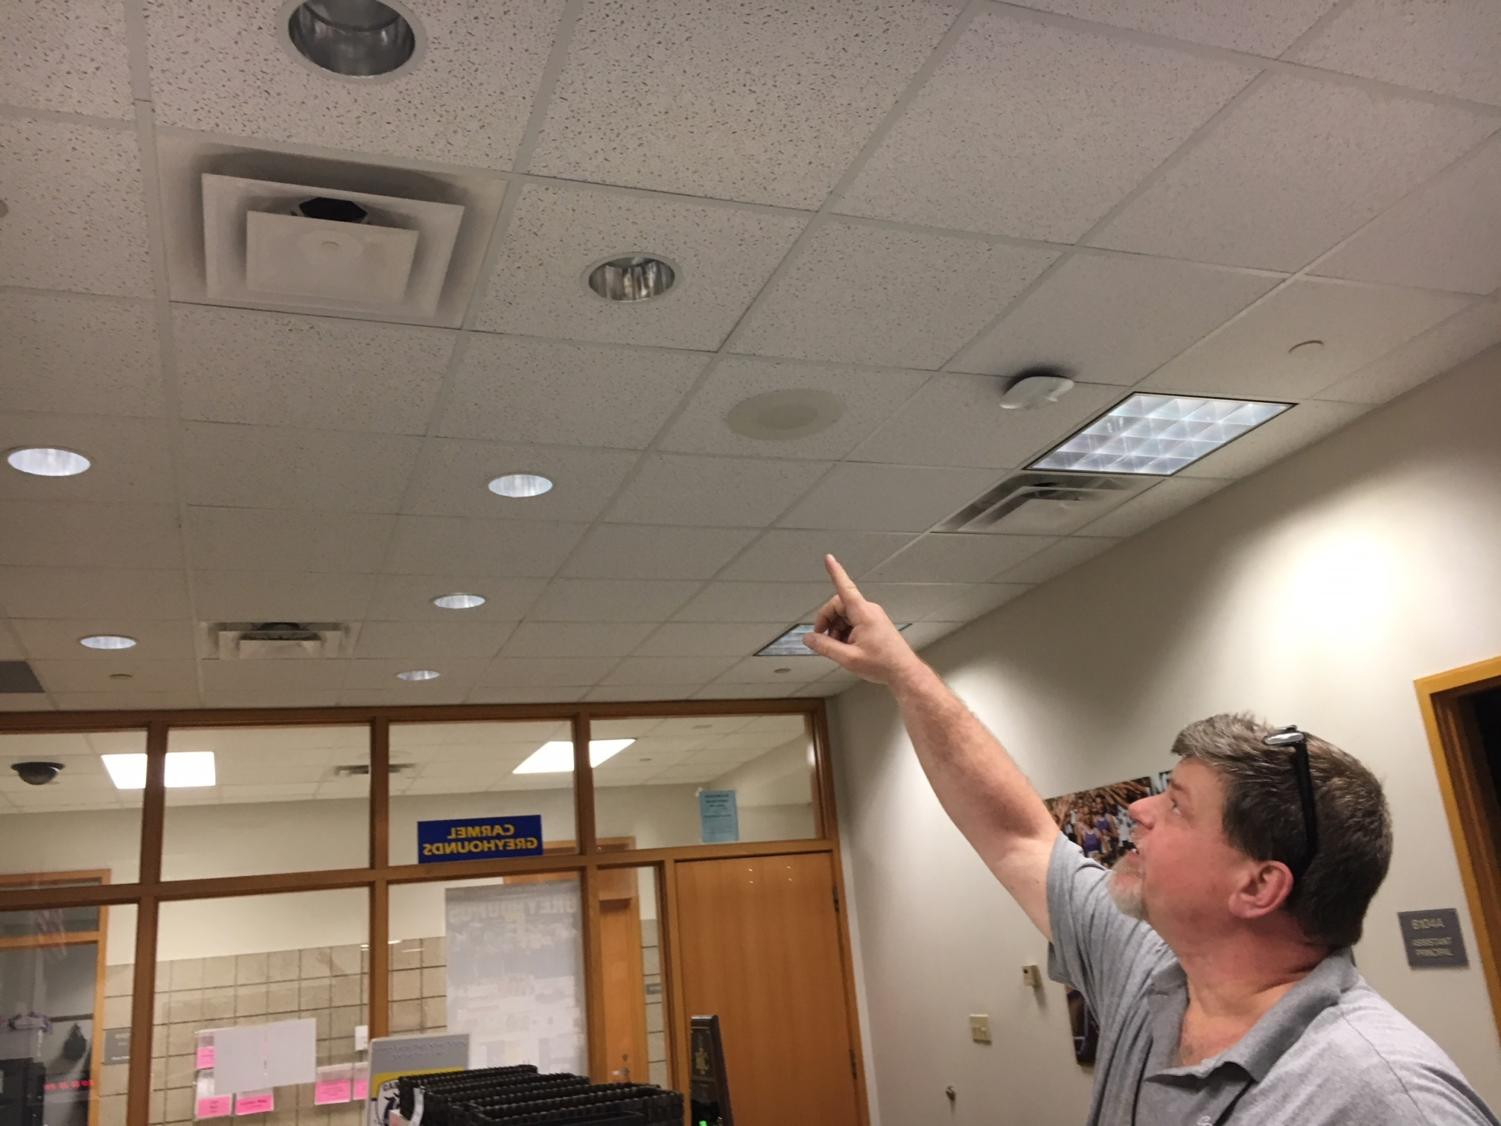 Maintenance worker Fred Napier points to a light in the activities office that went out earlier this week. This was one of many work orders that the maintenance staff has to look at on a daily basis.